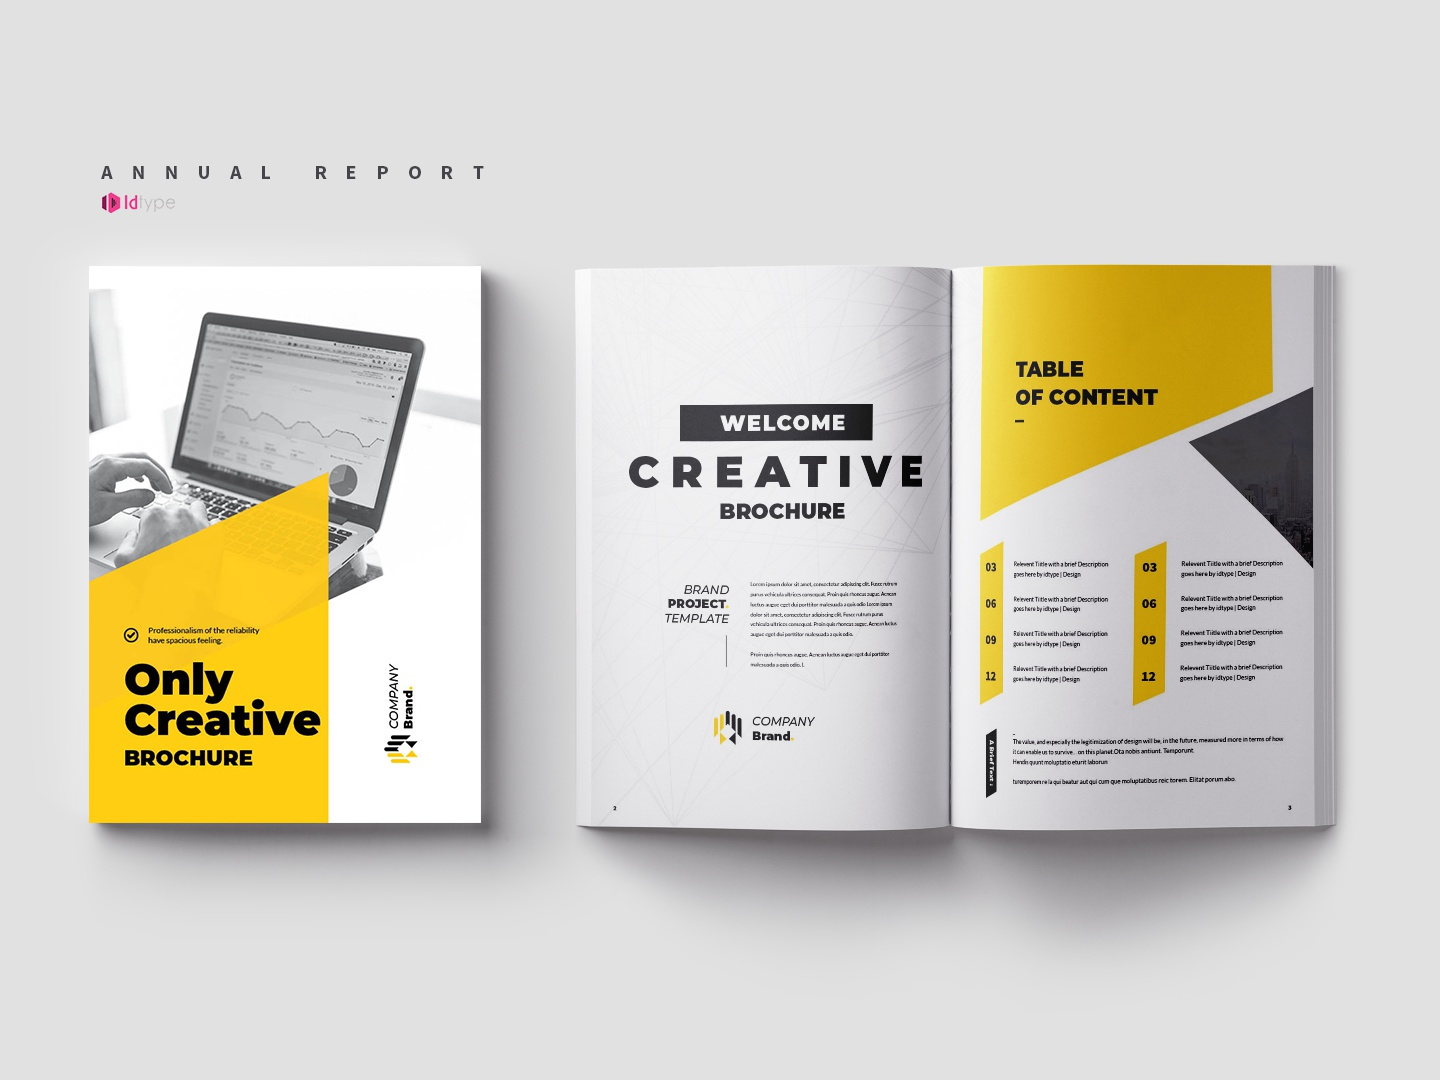 Annual Report Template By Yasin Arafat On Dribbble